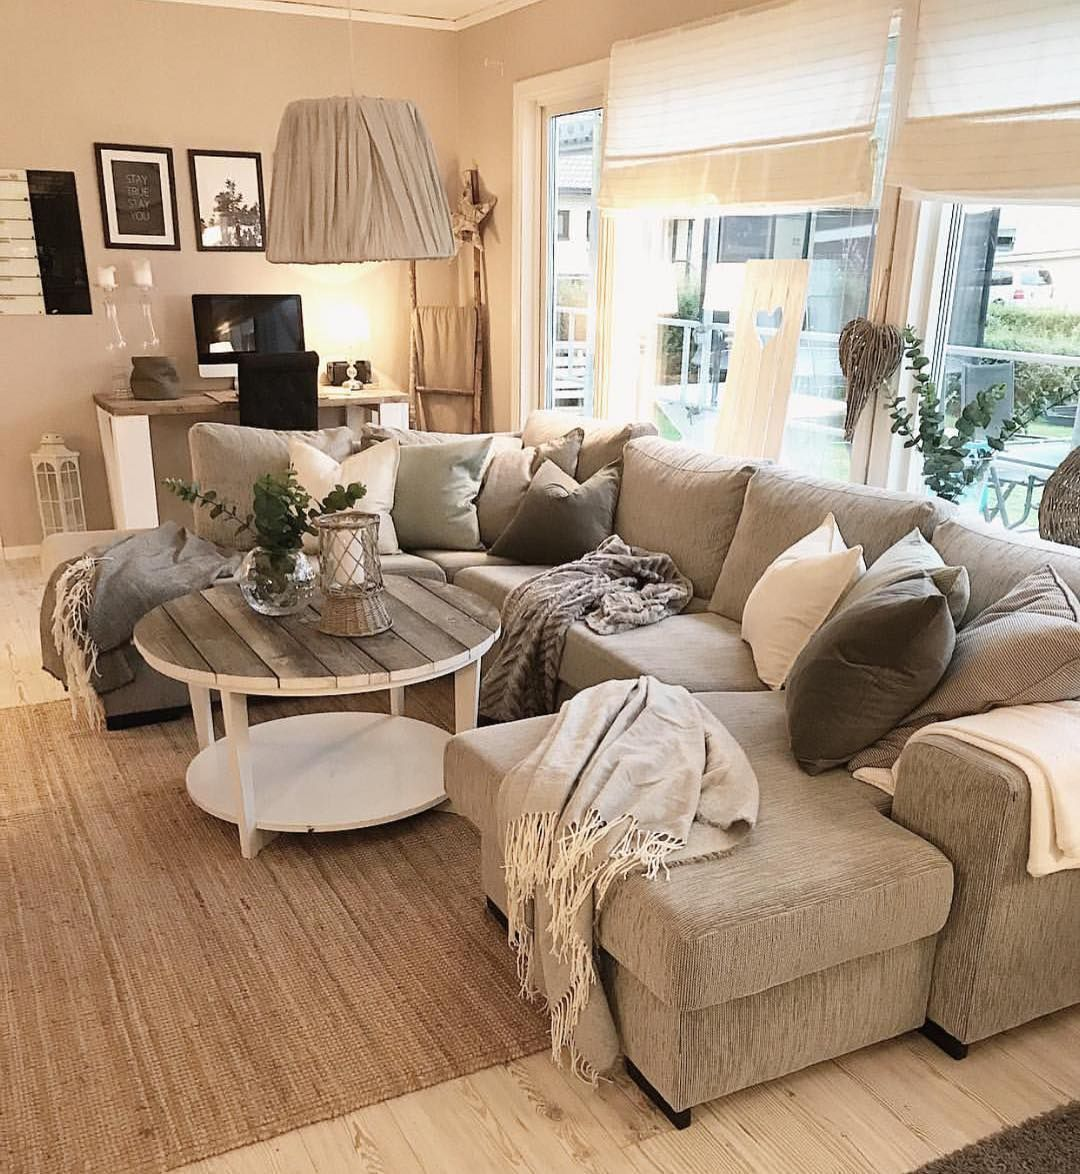 10 comfortable and cozy living rooms ideas you must check on cozy apartment living room decorating ideas the easy way to look at your living room id=17183